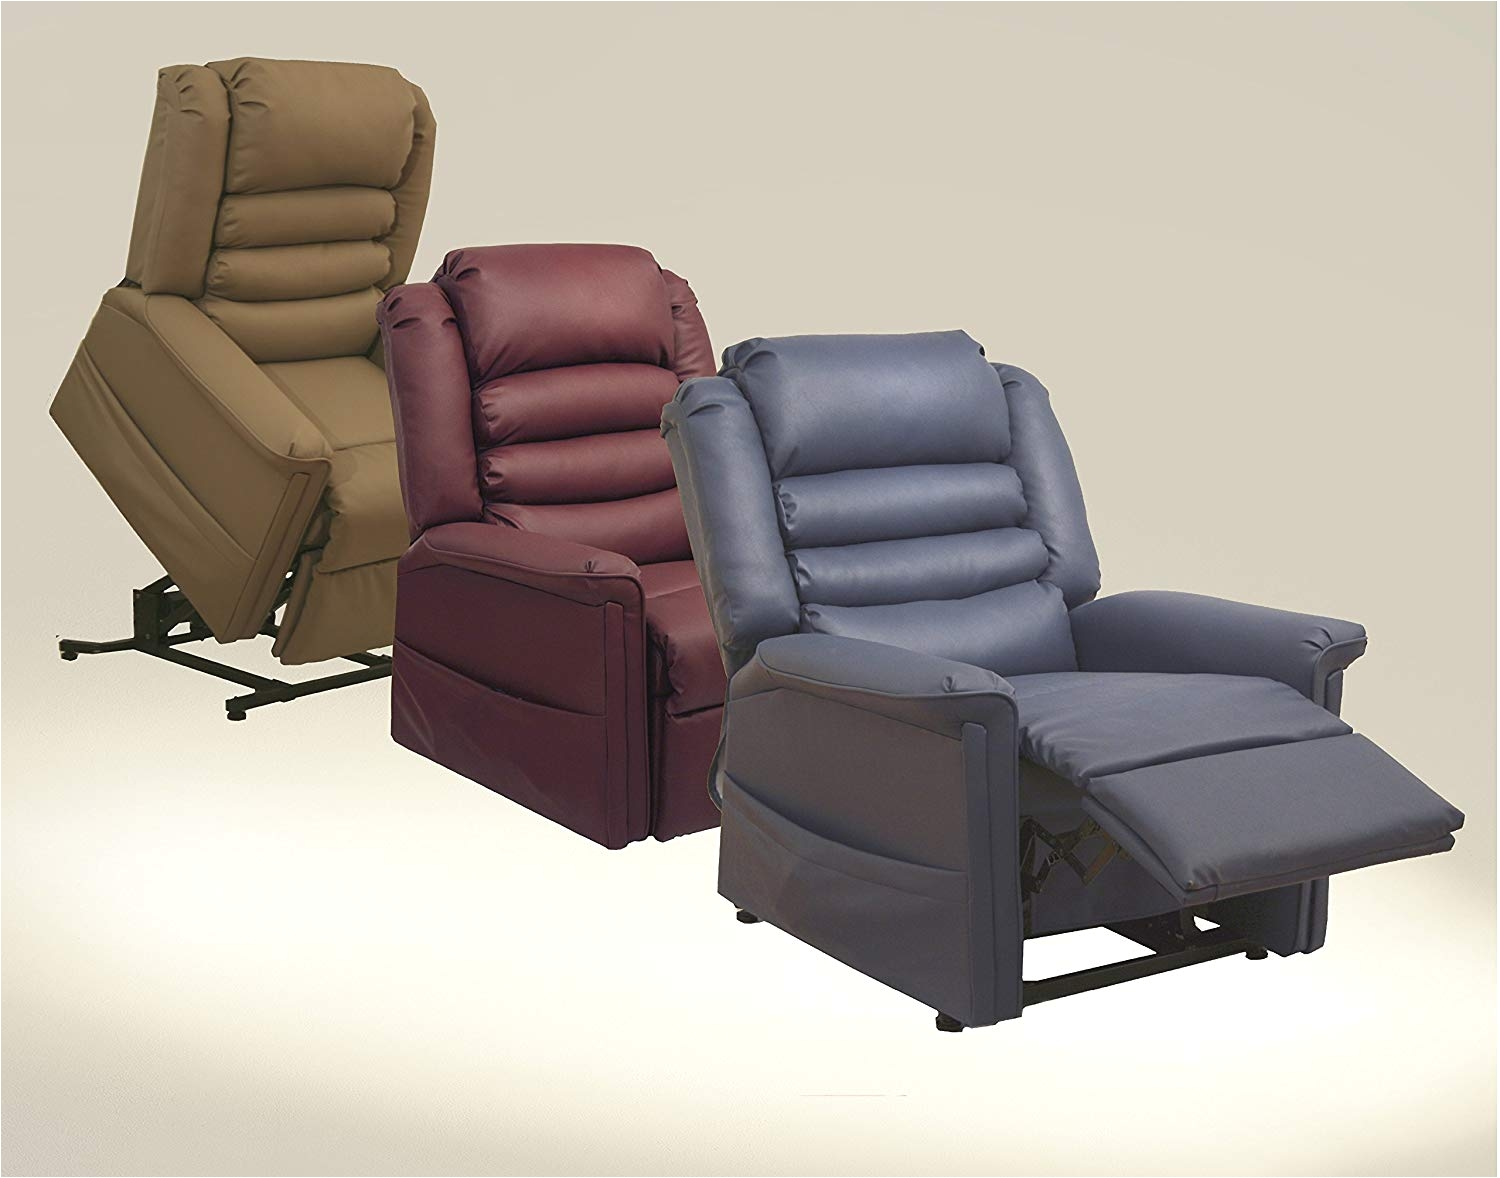 Rent A Center Lift Chair Amazon Com Invincible Pow R Lift Full Lay Out Chaise Recliner Color